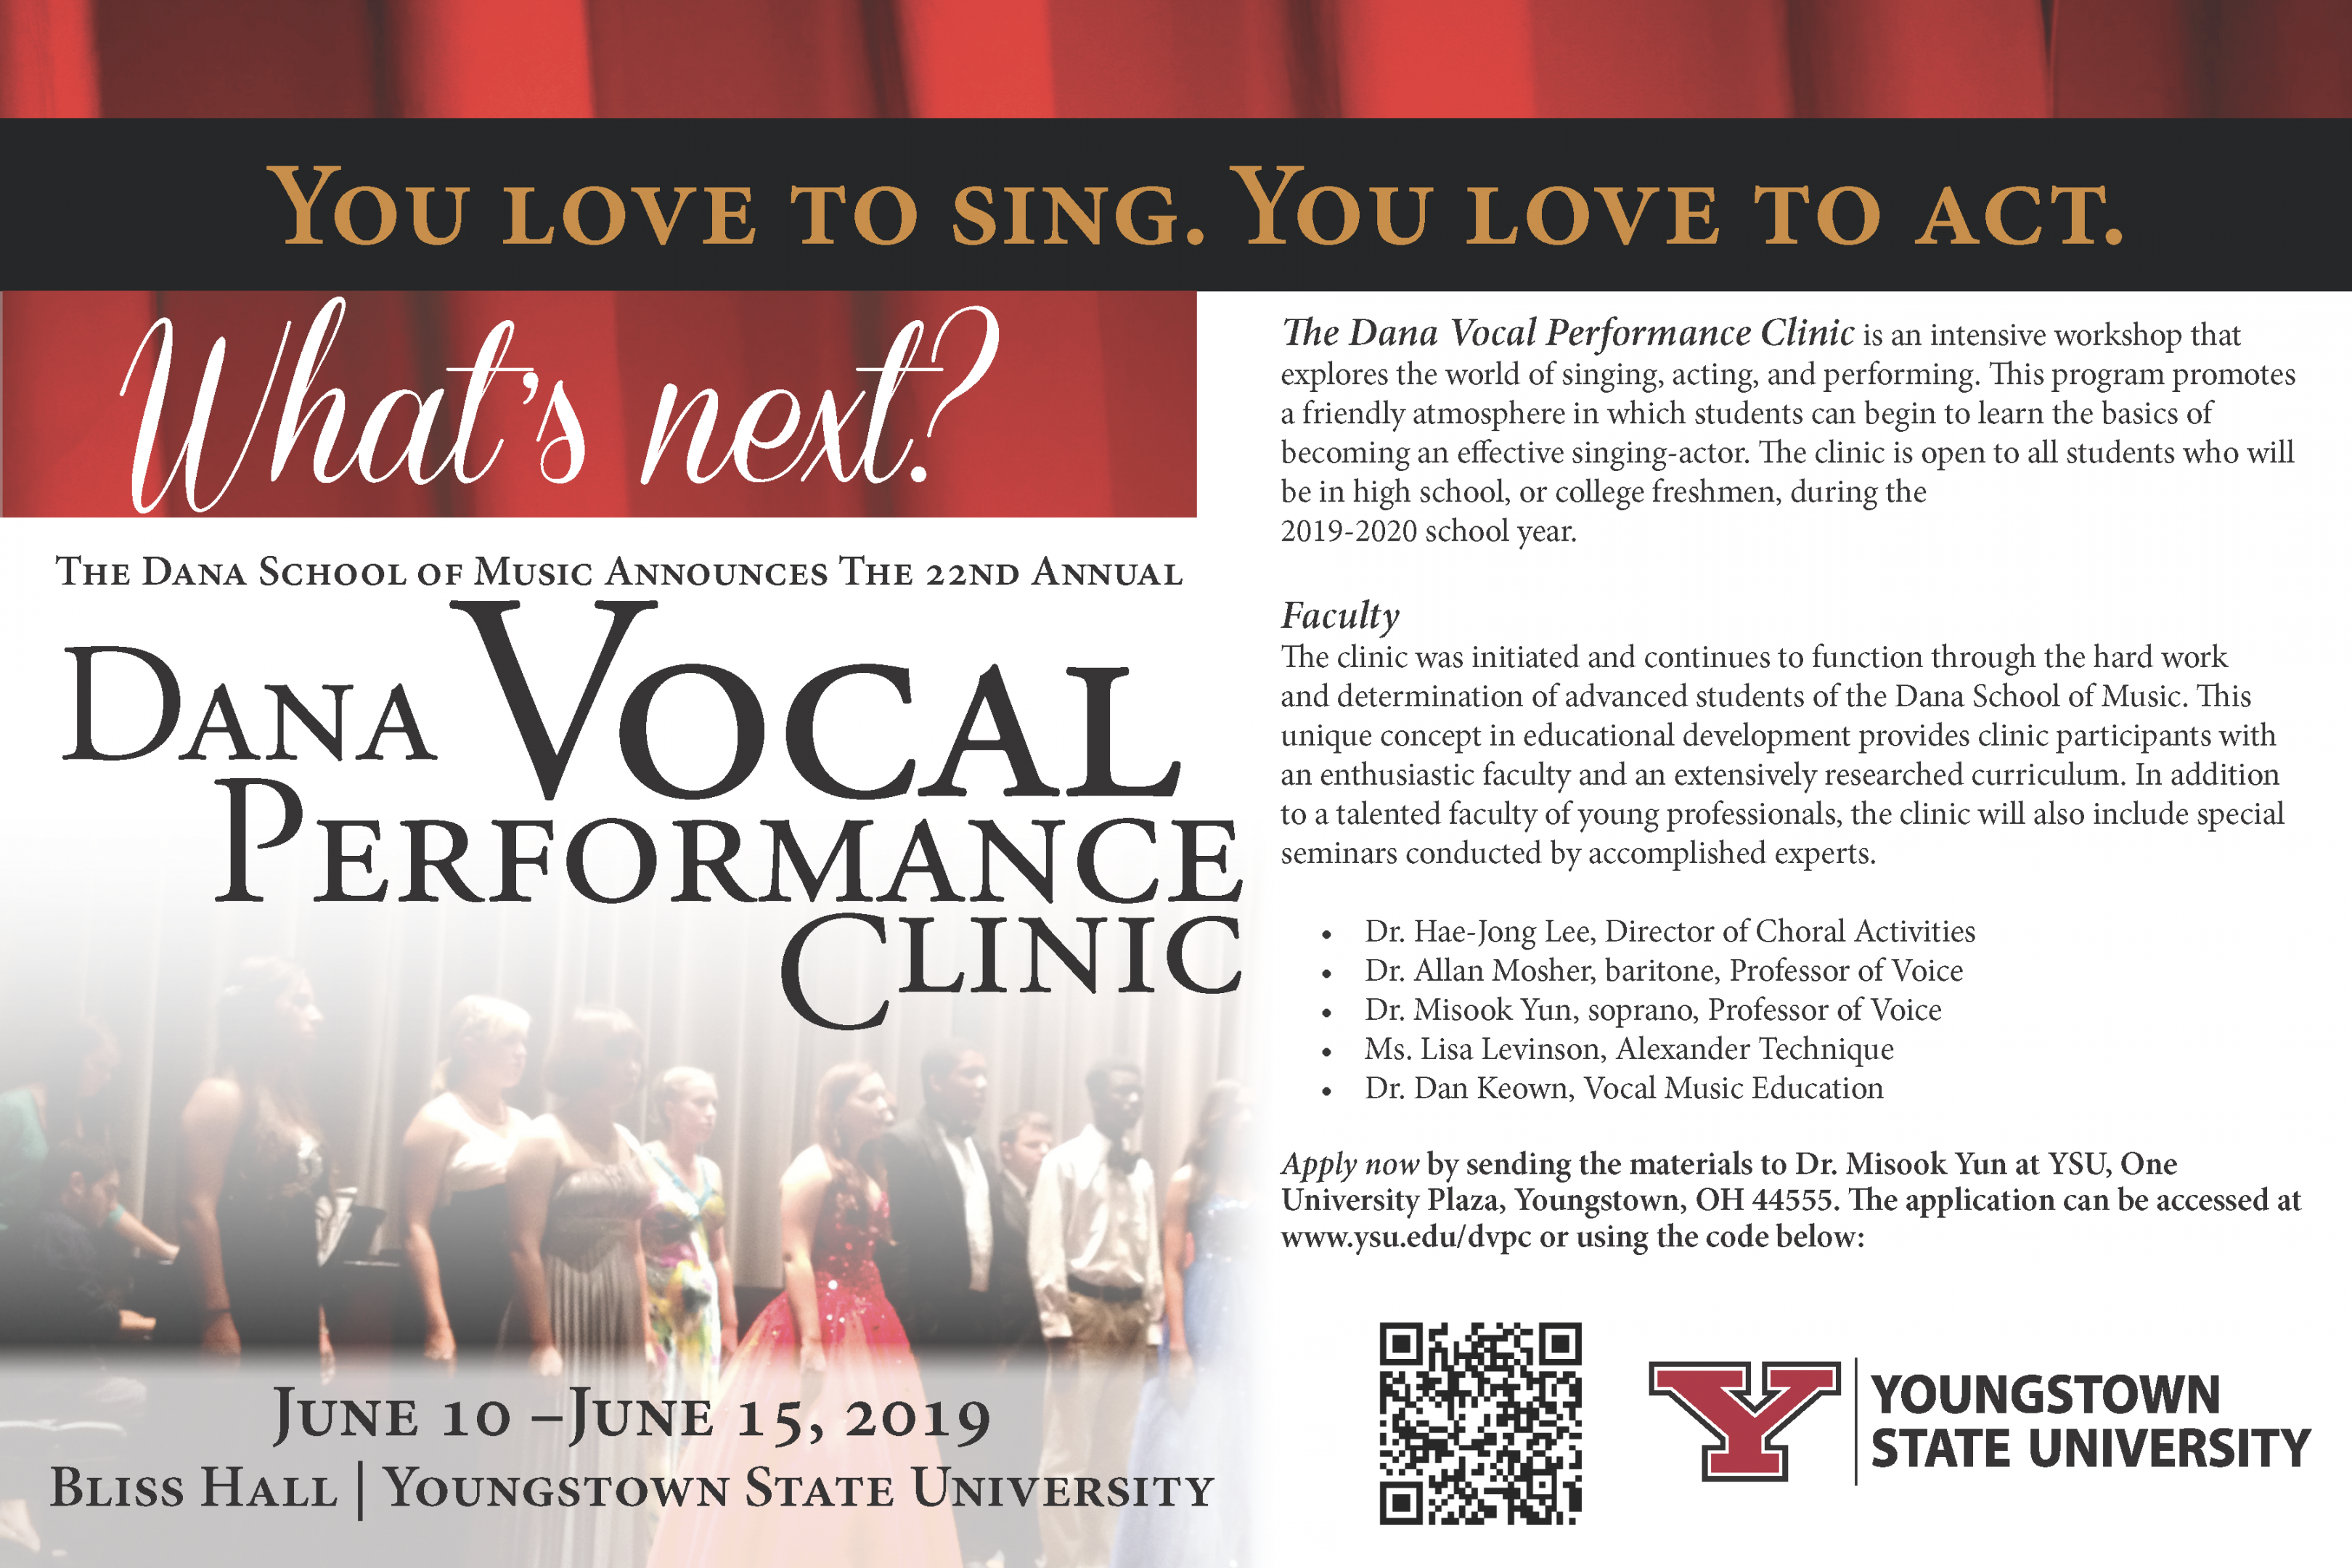 Dana School of Music - Vocal Performance Clinic